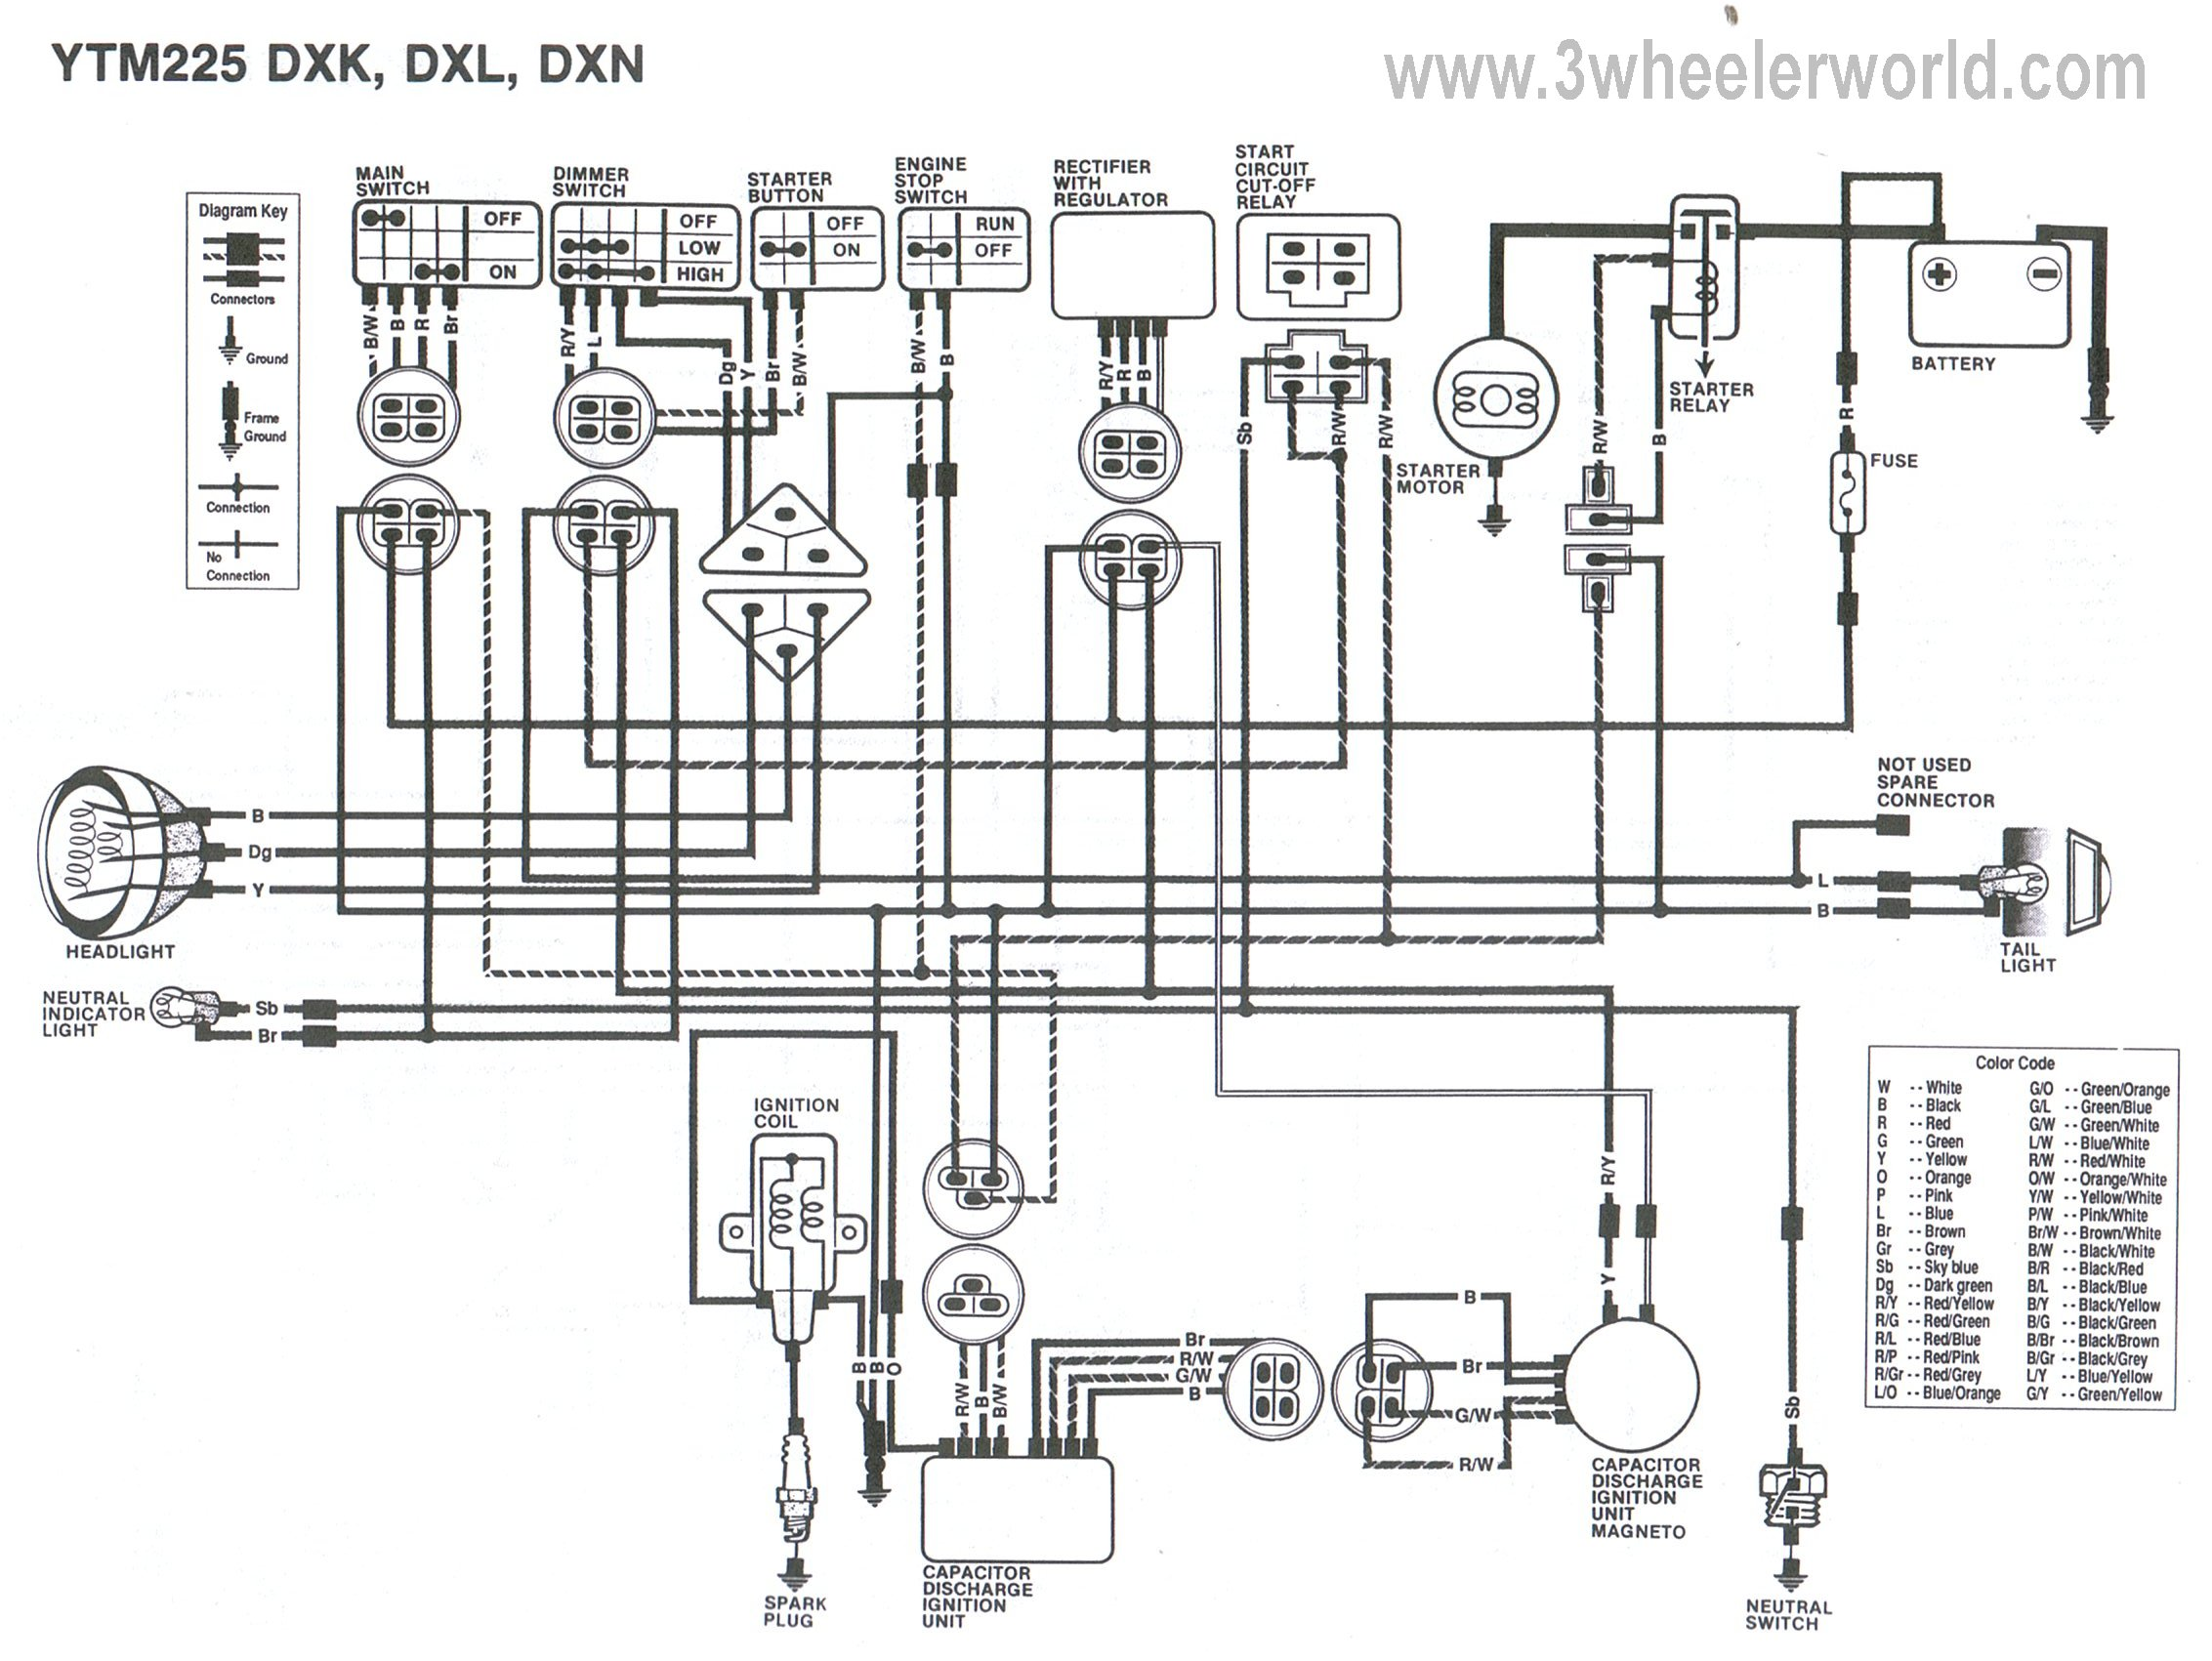 yamaha xj600 wiring diagram yamaha 225dx engine diagram yamaha wiring diagrams